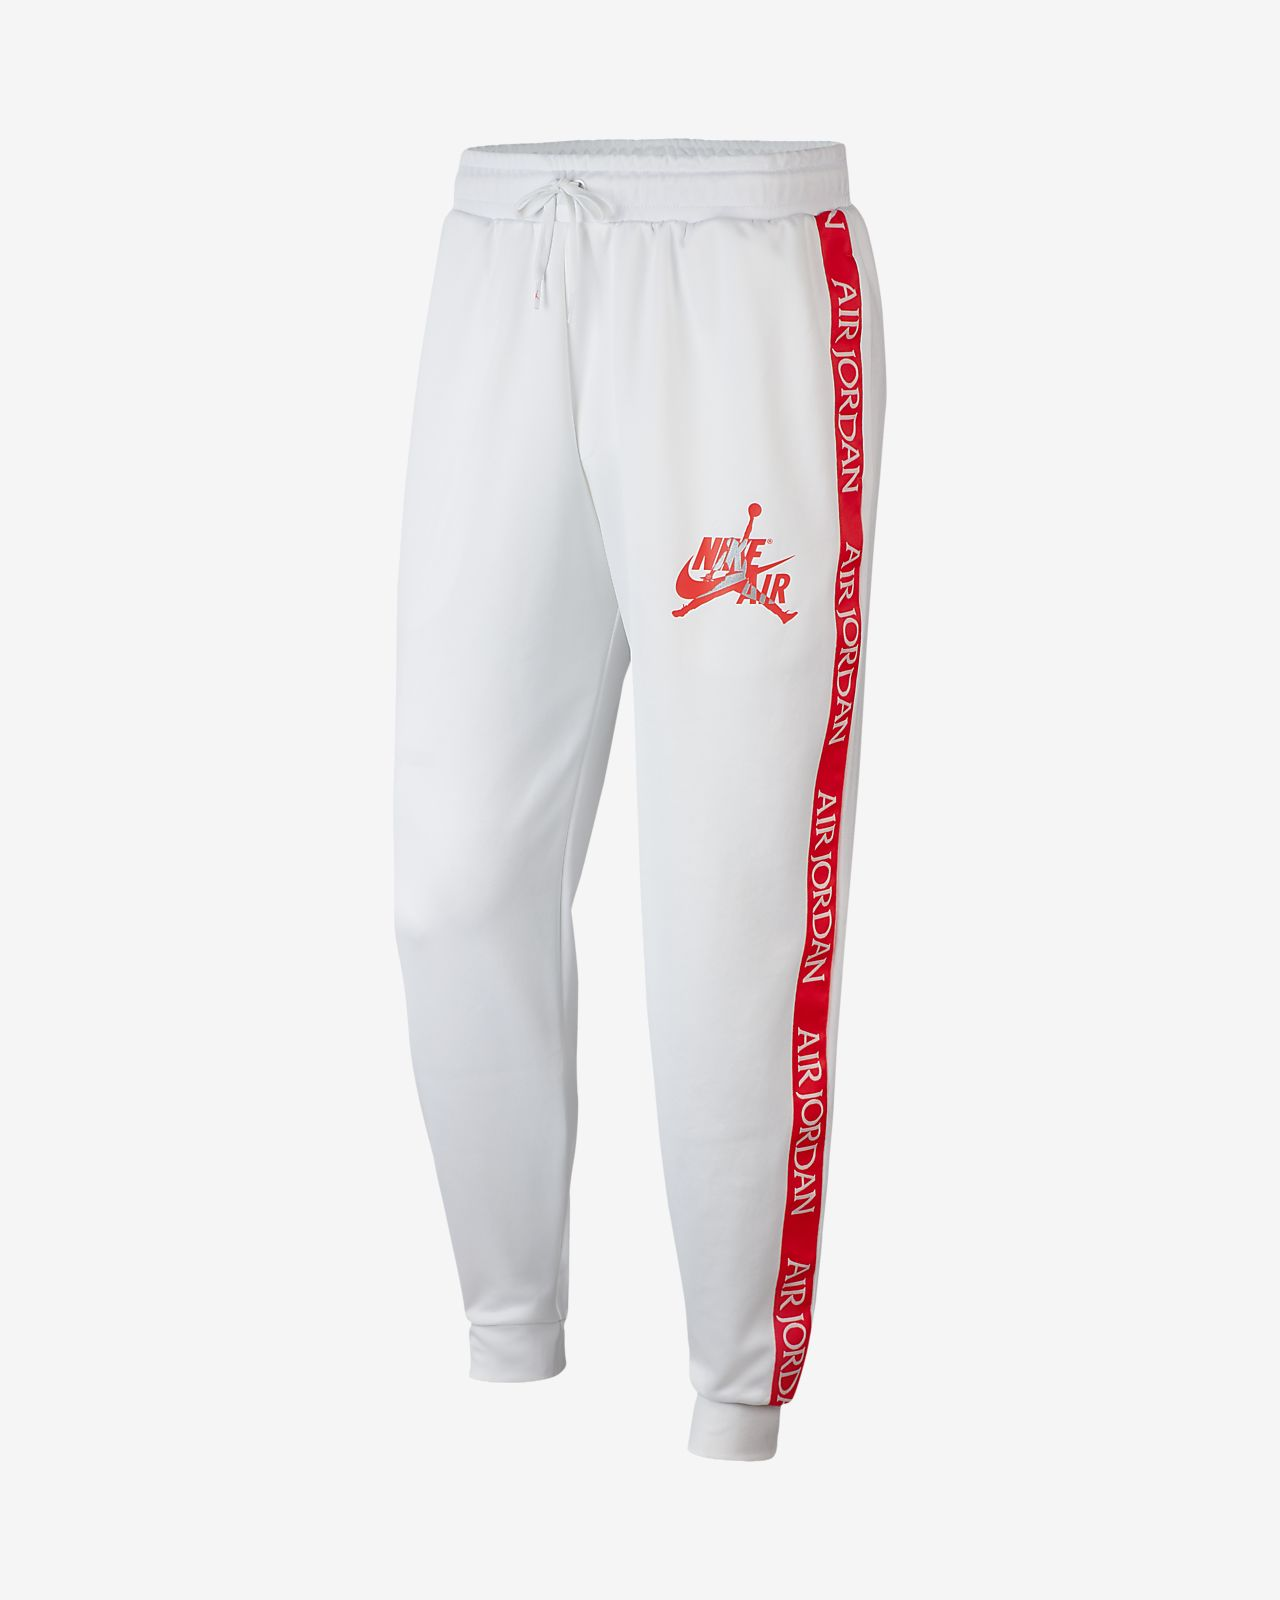 Jordan Jumpman Classics Men's Tricot Warm-Up Trousers